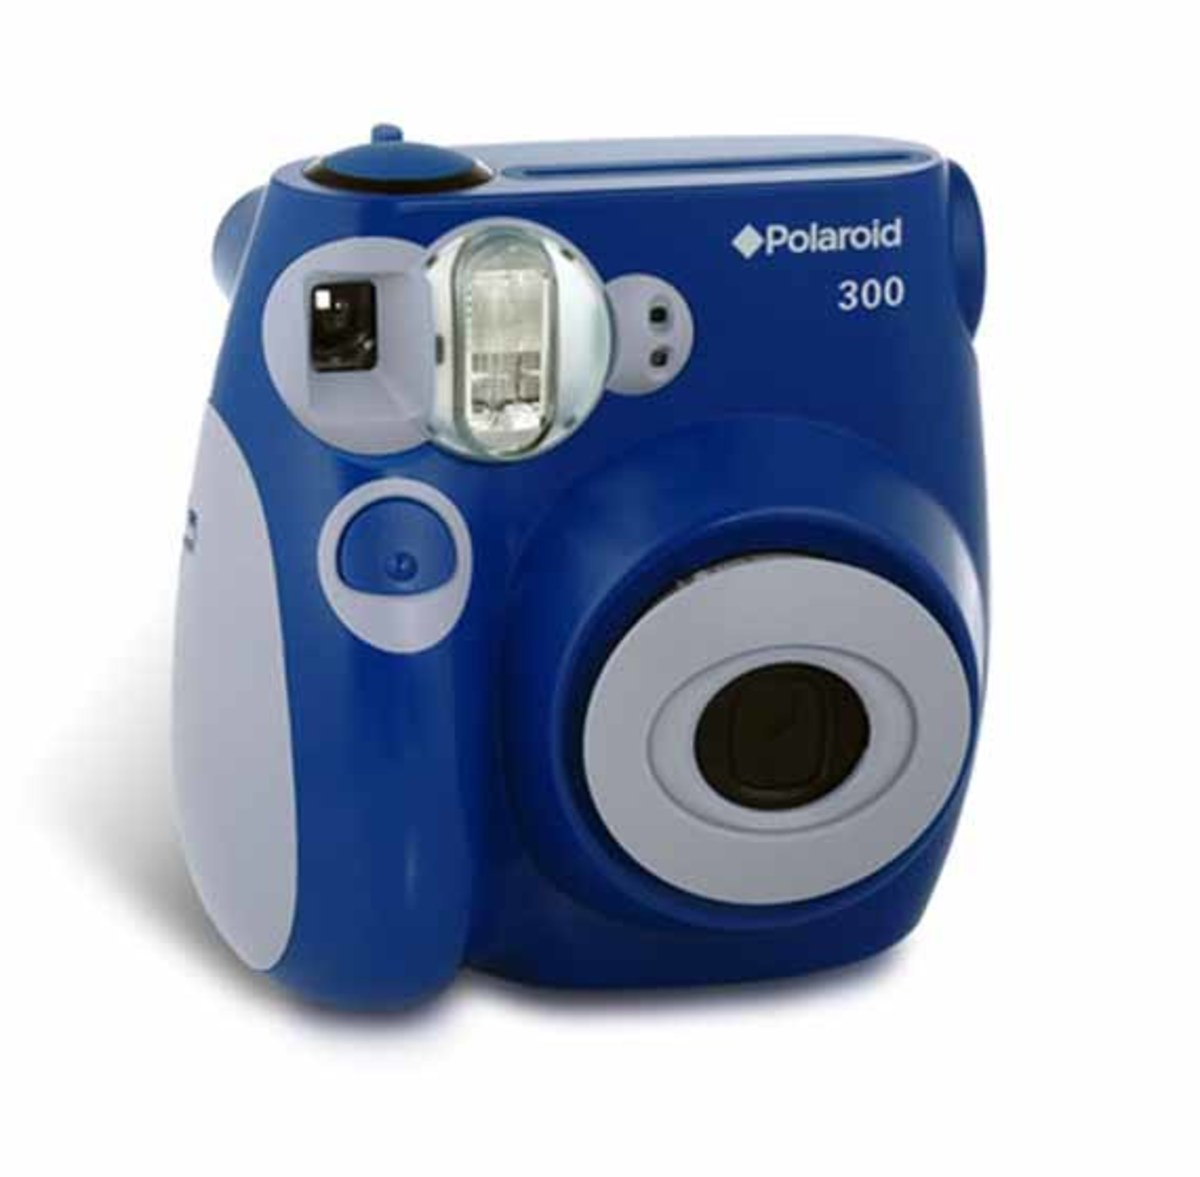 polaroid-300-available-now-2